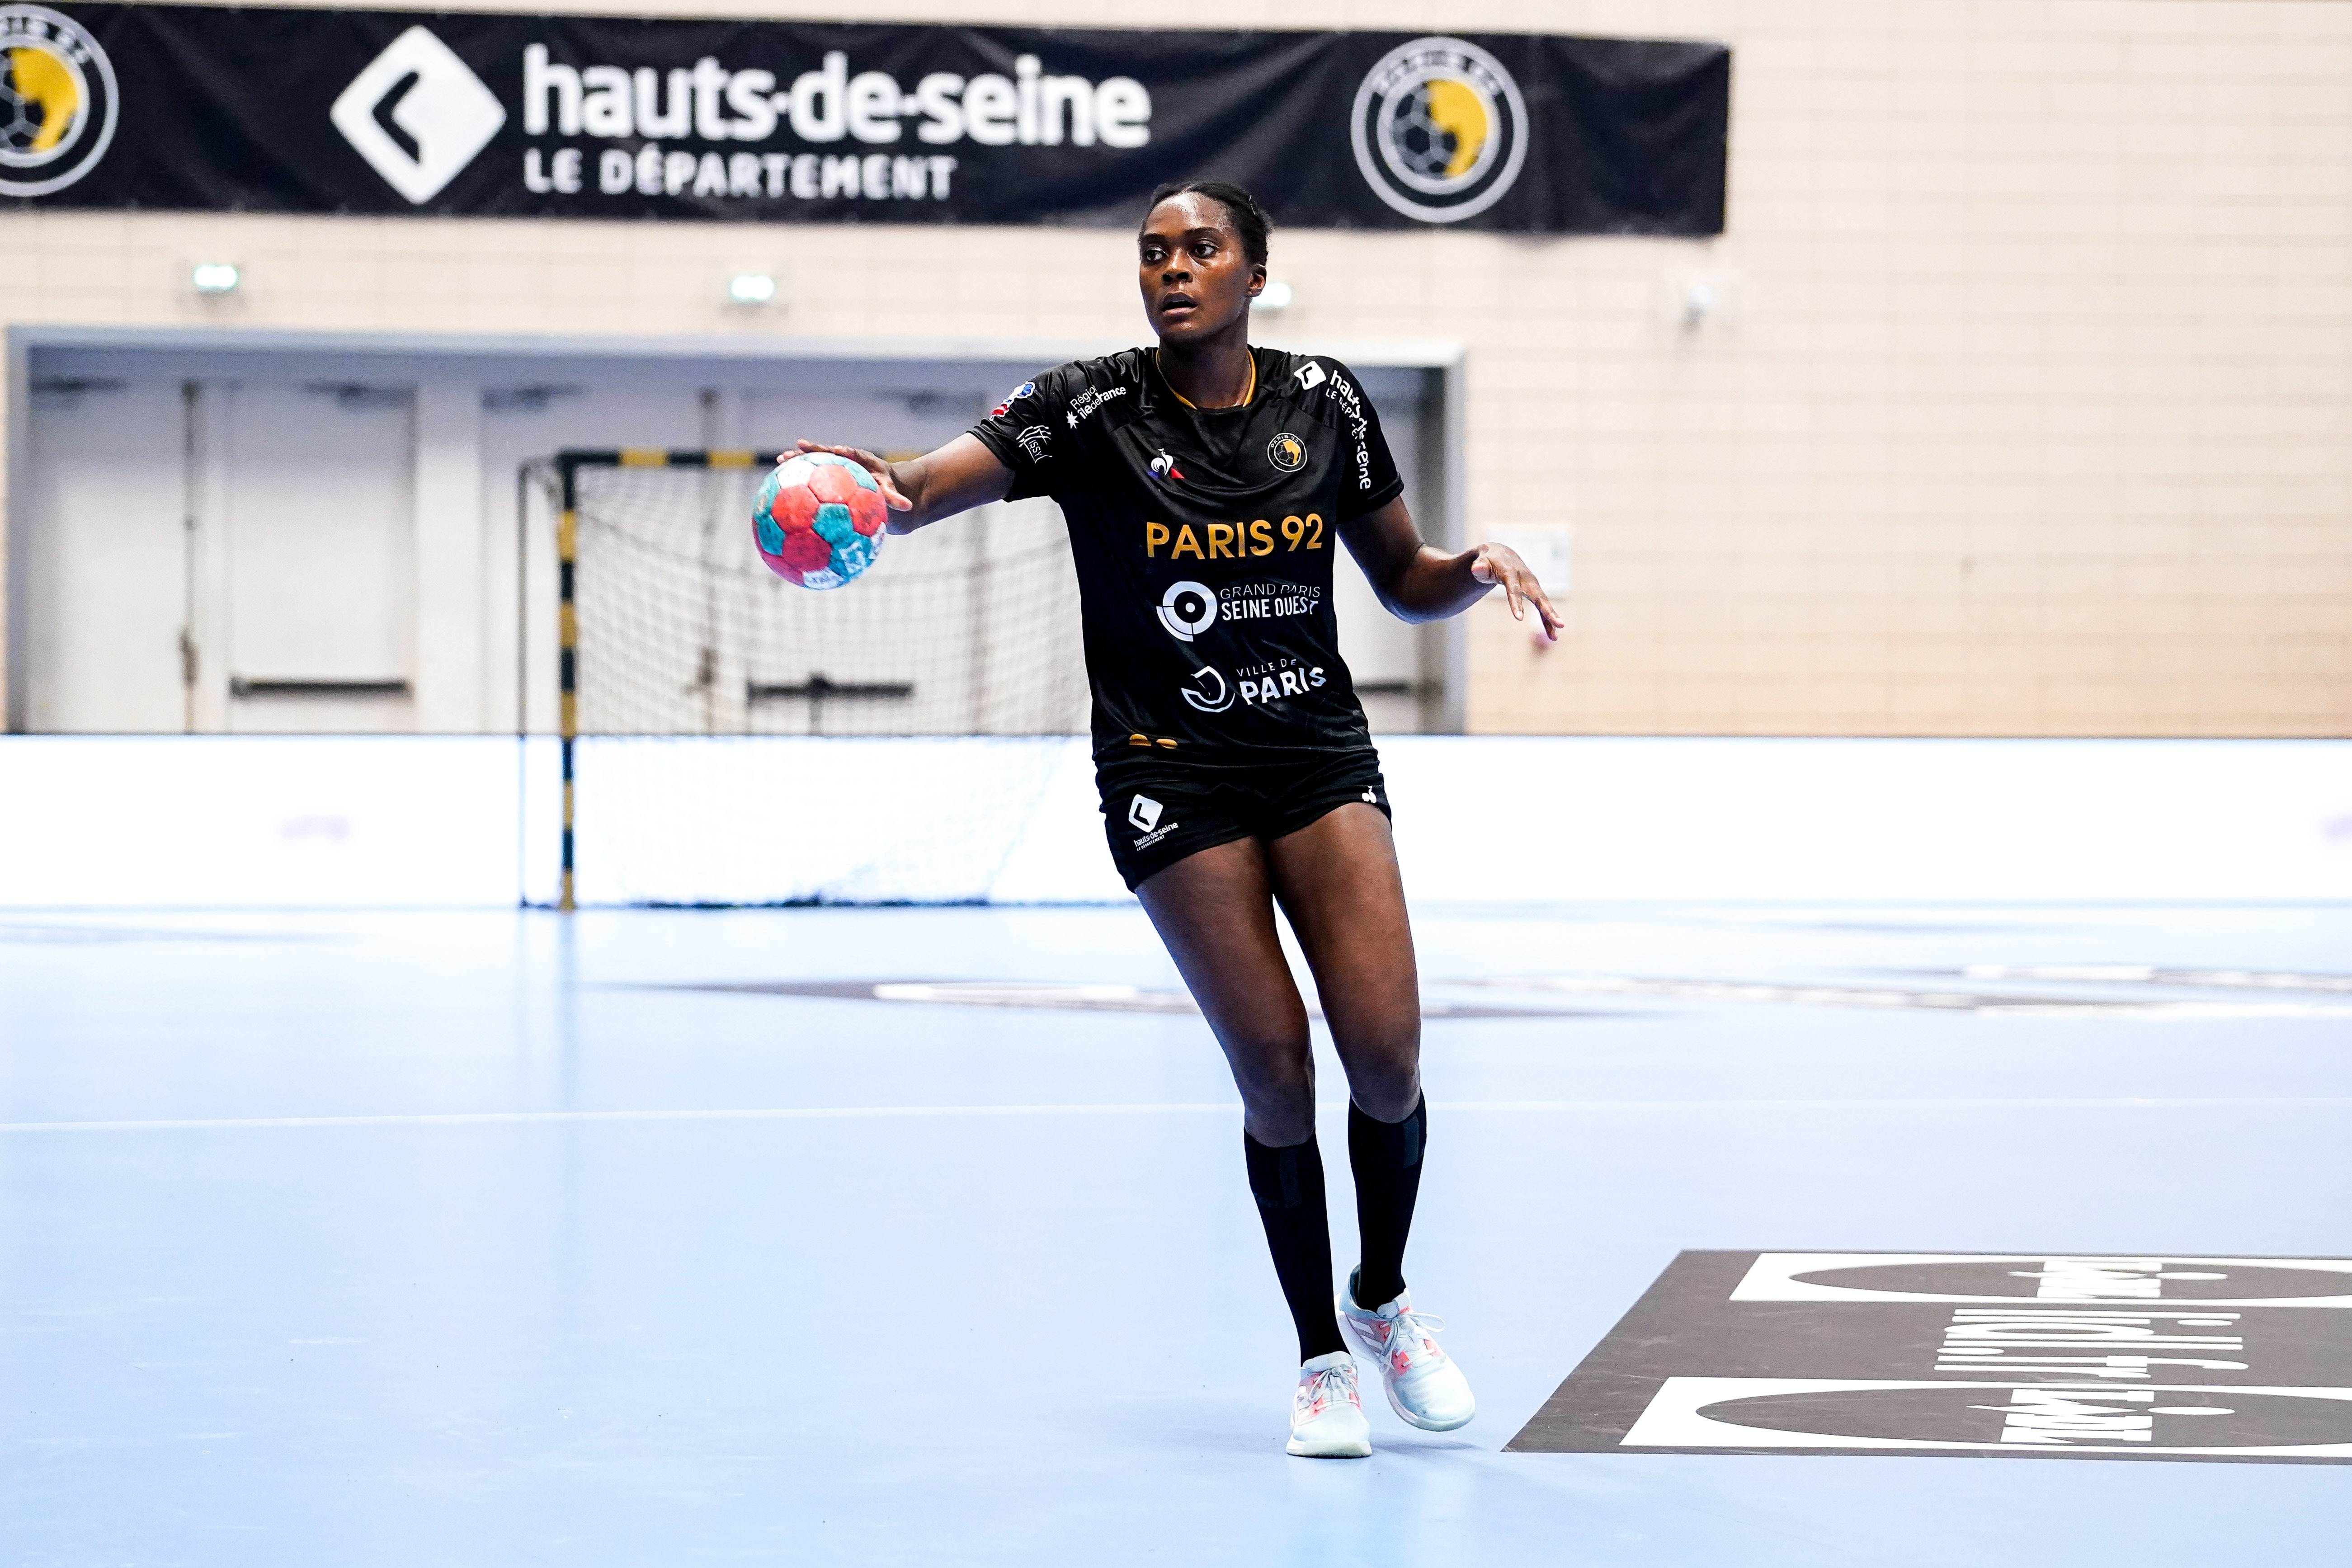 Gnonsiane NIOMBLA of Paris 92  during the Ligue Butaguaz Energie match between Paris 92 and Chambray at Palais des Sports on September 8, 2021 in Paris, France. (Photo by Hugo Pfeiffer/Icon Sport) - Palais des Sports Robert Charpentier - Issy-les-Moulineaux (France)